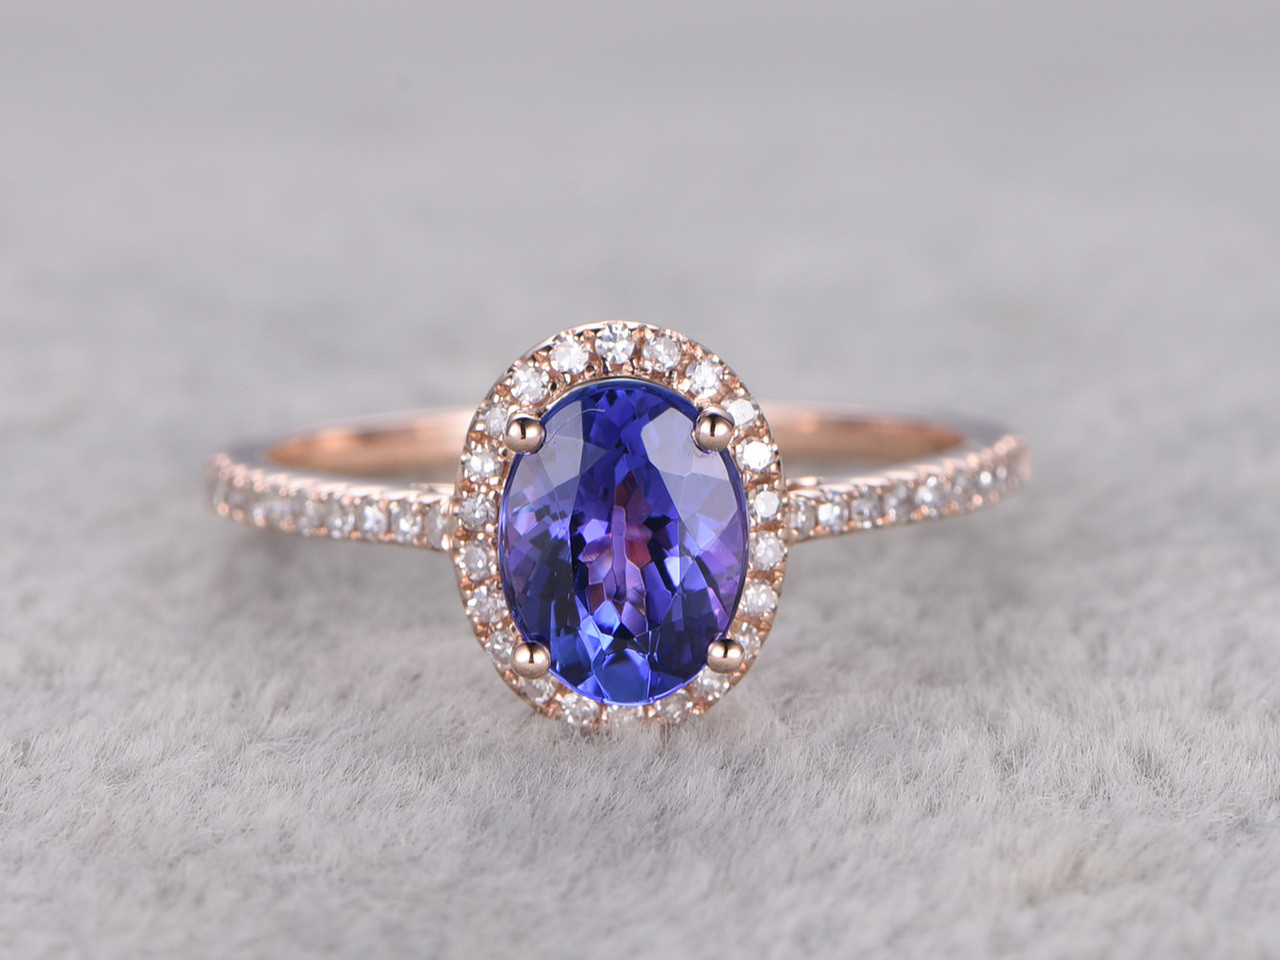 tanzanite and diamond engagement ring rose gold 1 2 carat oval halo promise stacking band 14k. Black Bedroom Furniture Sets. Home Design Ideas